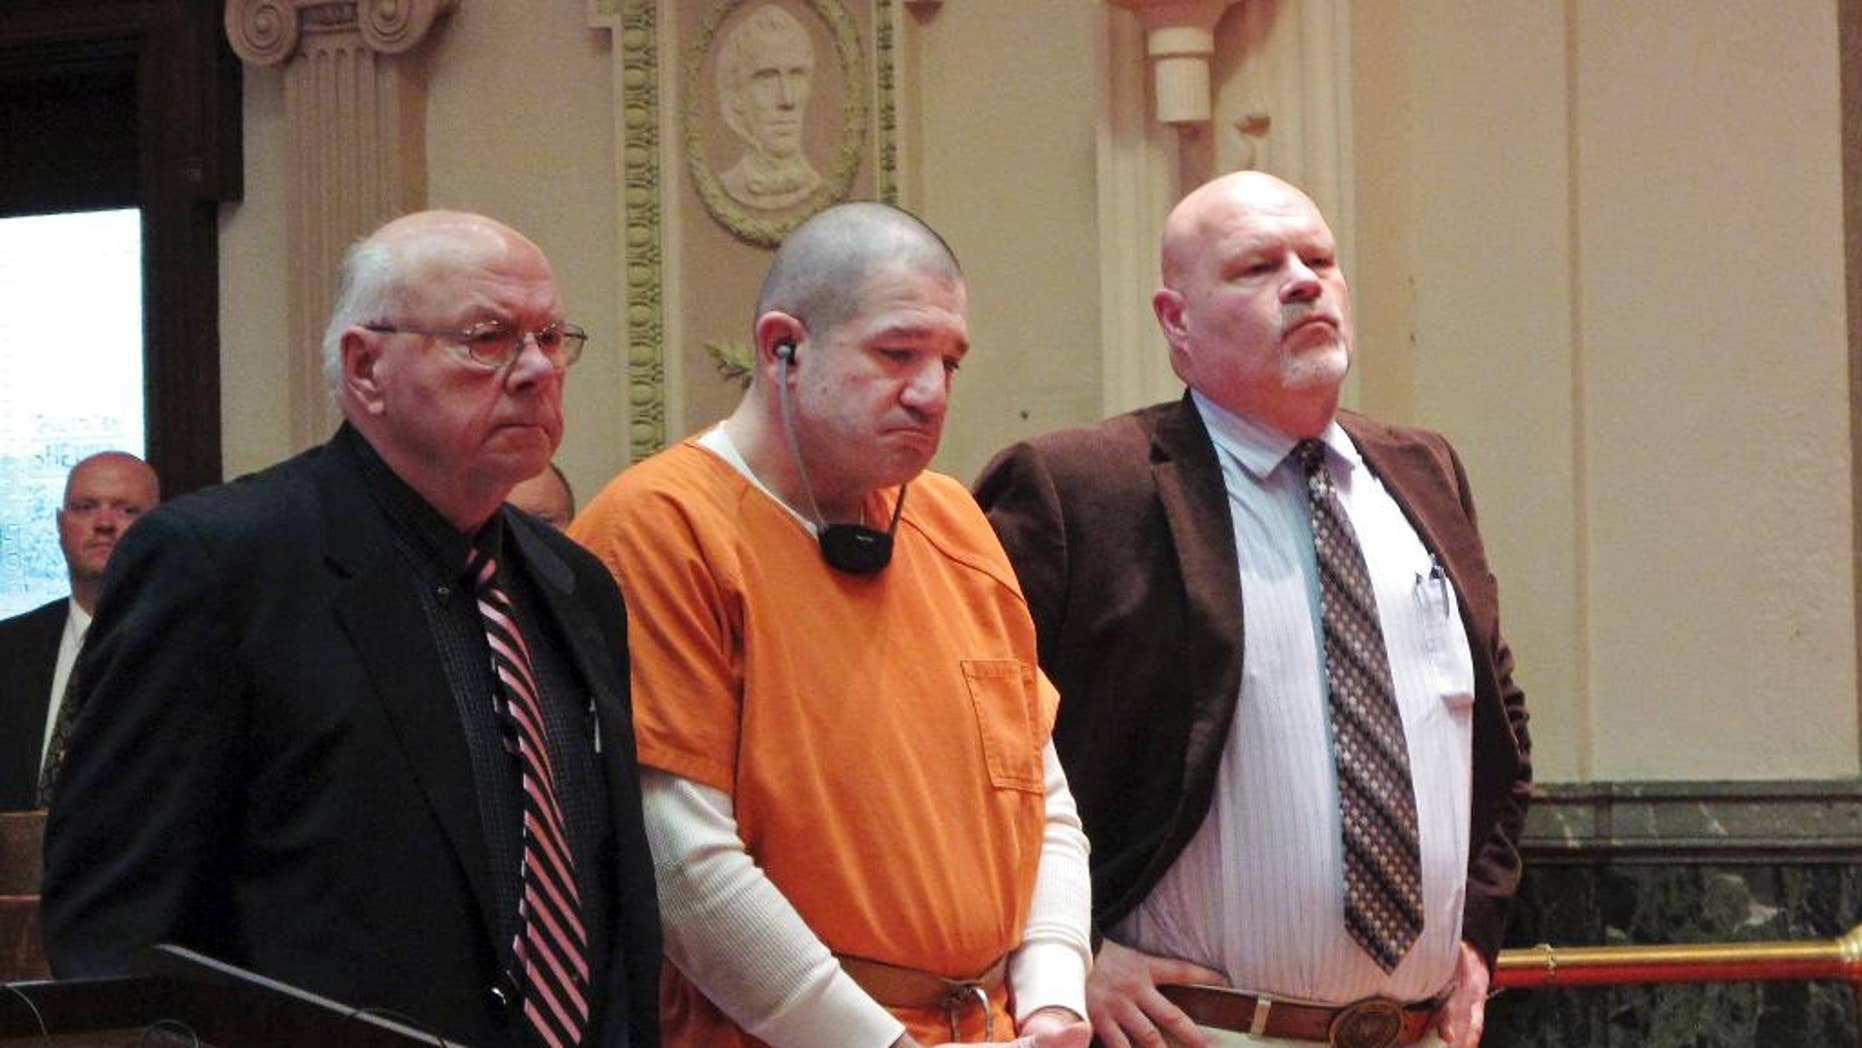 Ohio man recounts how he killed 4 during drug binge, told others